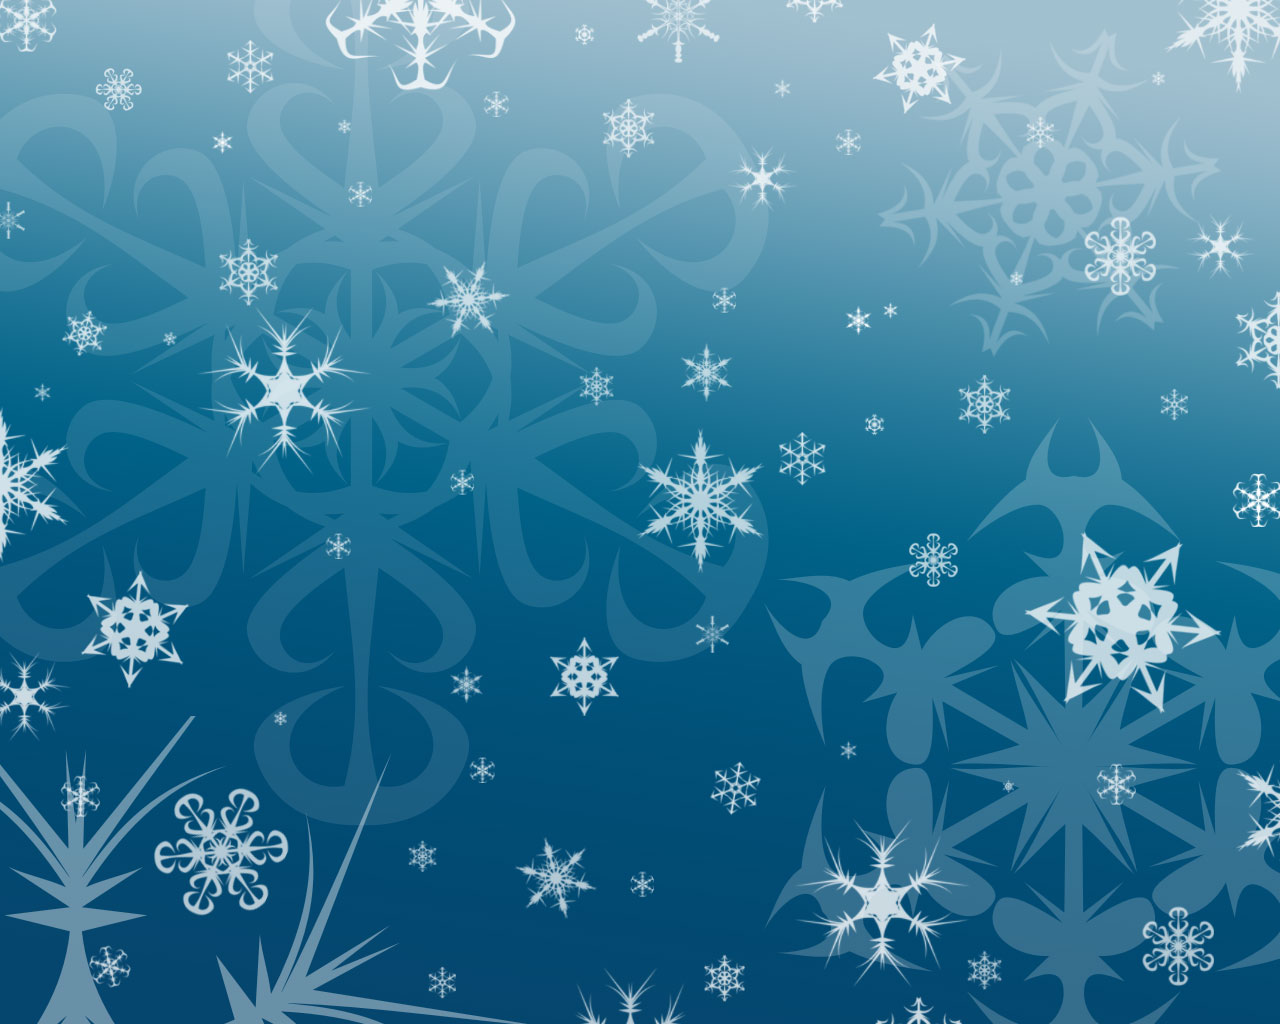 Wallpapers: Cool Winter Wallpapers: Winter Free desktop wallpaper